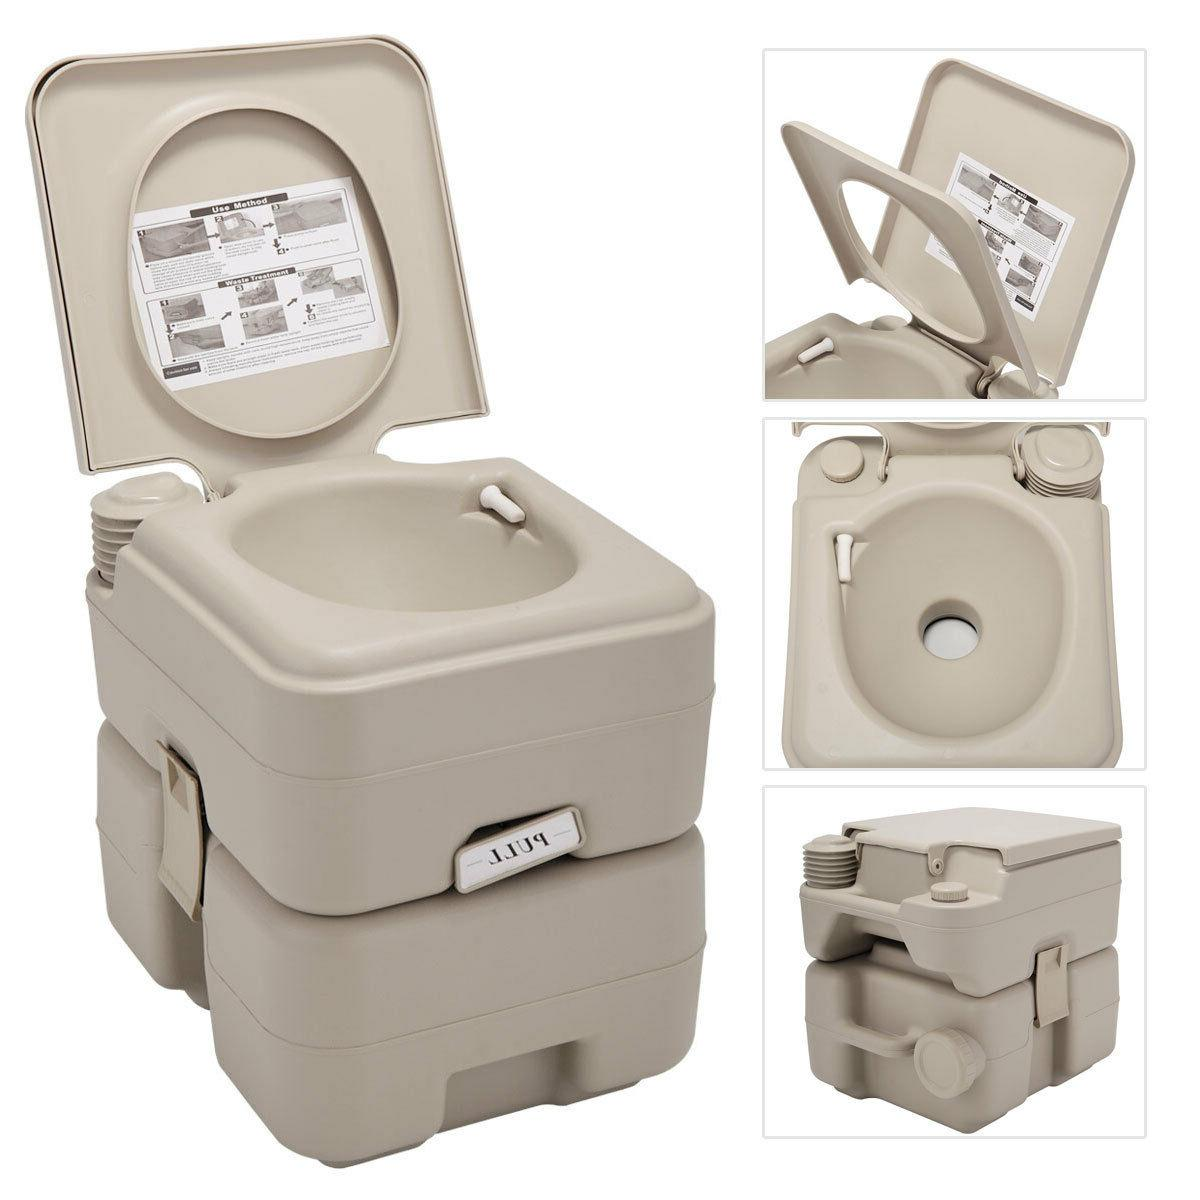 20L 5 Gallon Portable Toilet Flush Camping Travel Outdoor/In